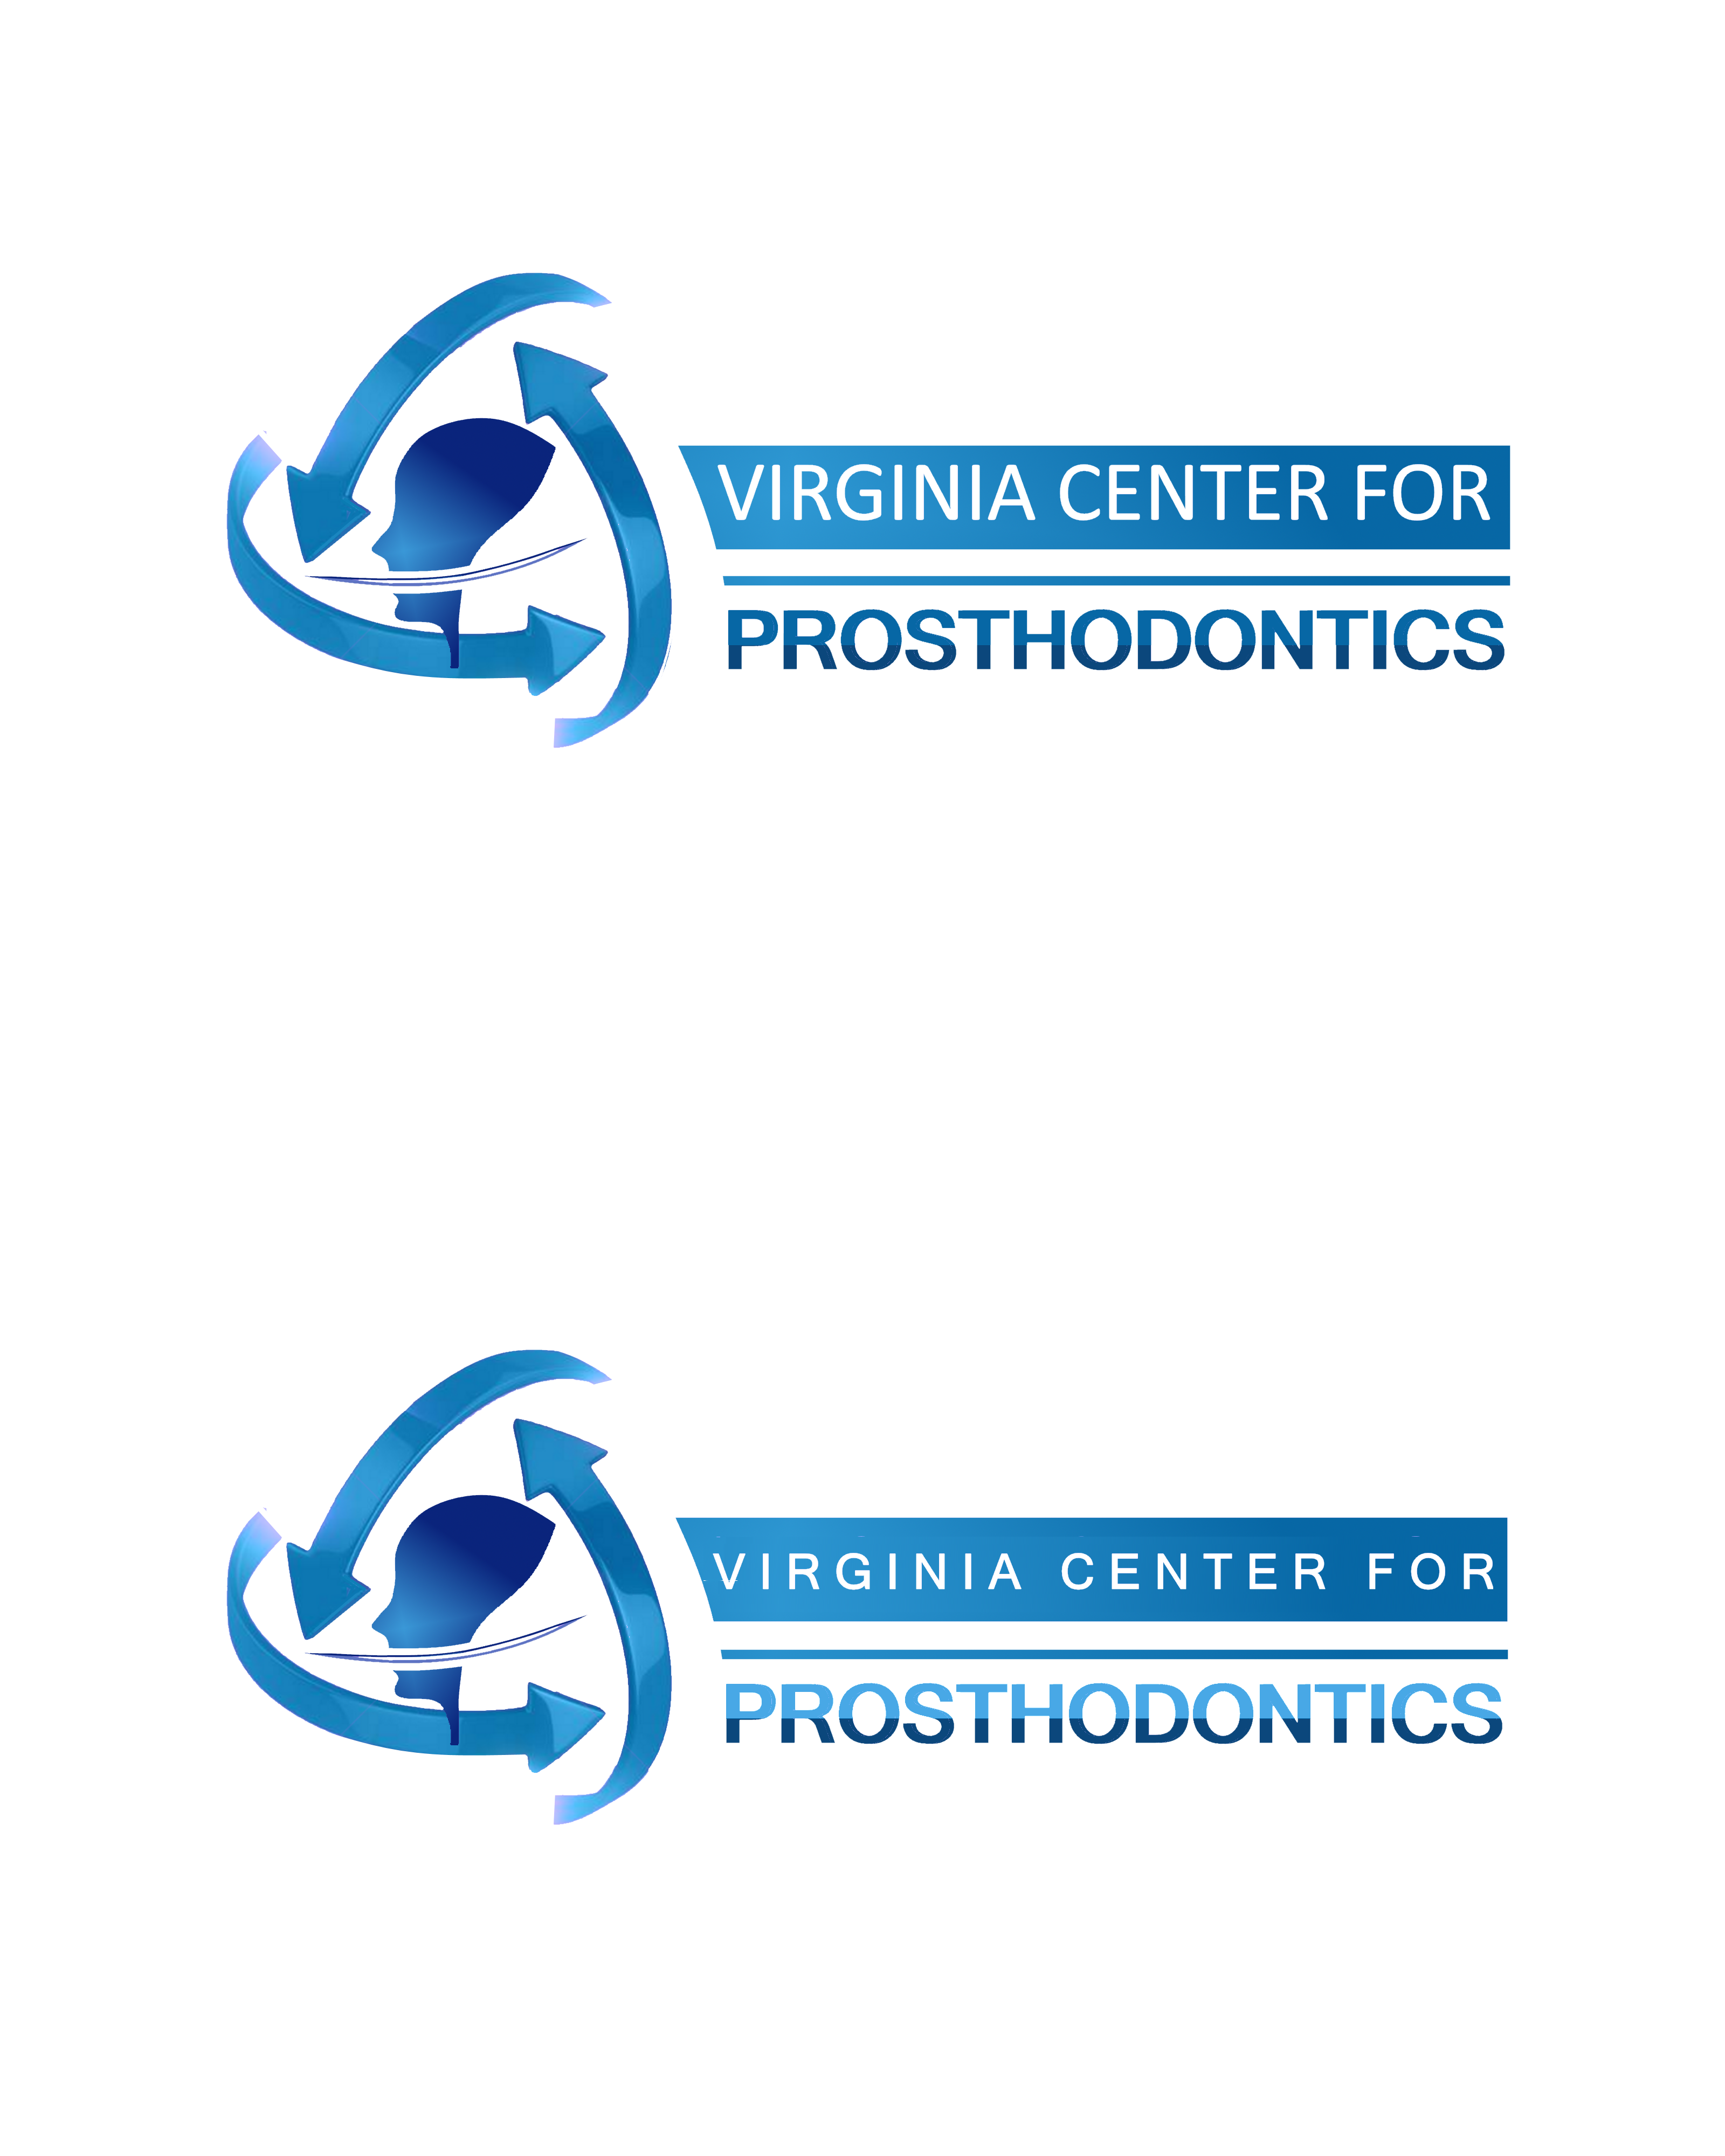 Logo Design by Roberto Bassi - Entry No. 108 in the Logo Design Contest Imaginative Logo Design for Virginia Center for Prosthodontics.